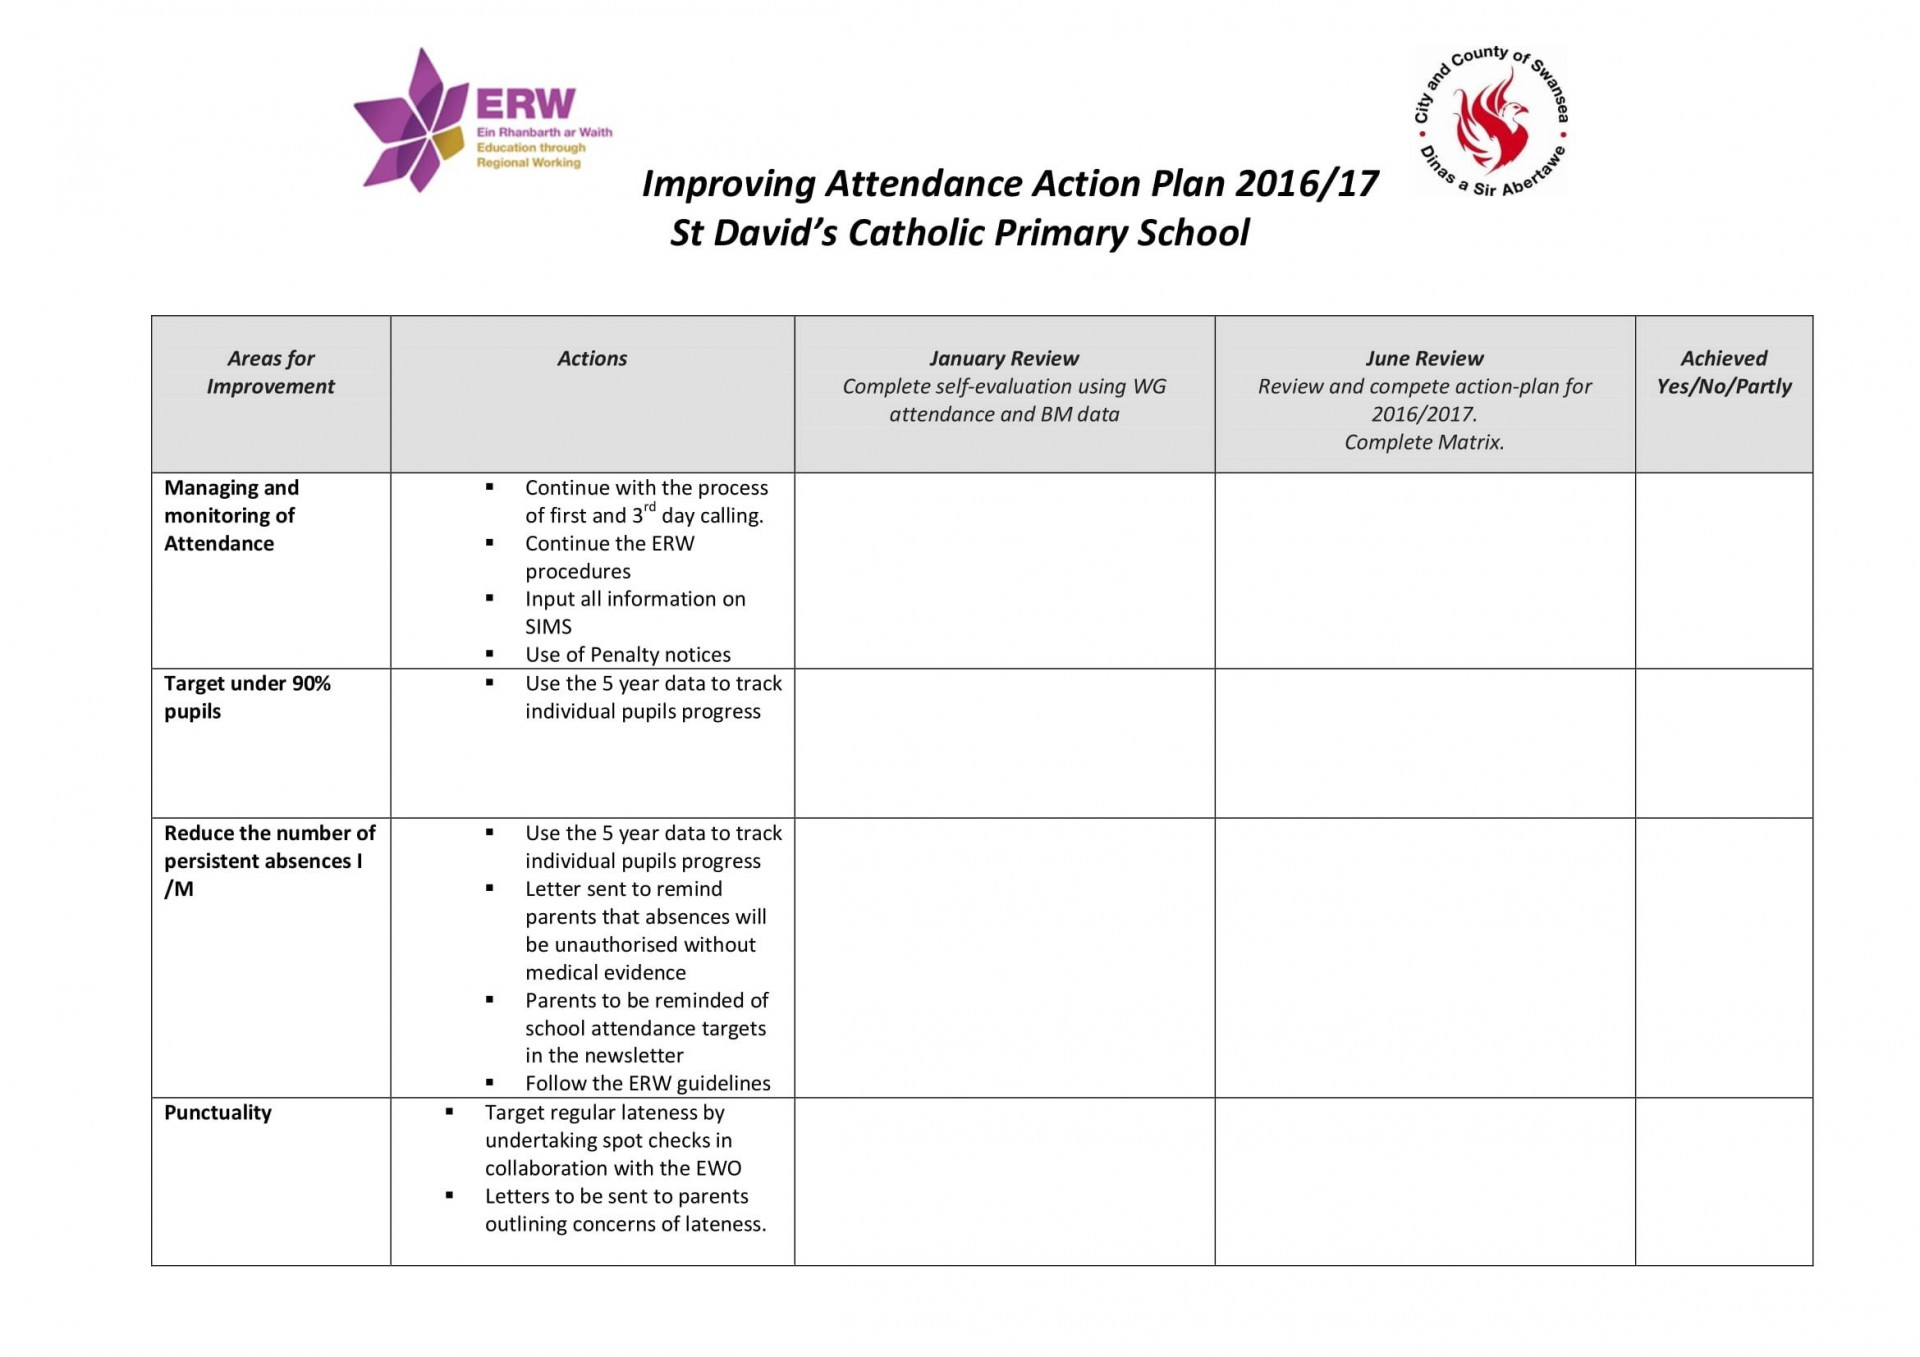 008 Fascinating School Improvement Planning Template Picture  Templates Plan Sample Deped 2016 Example South Africa1920